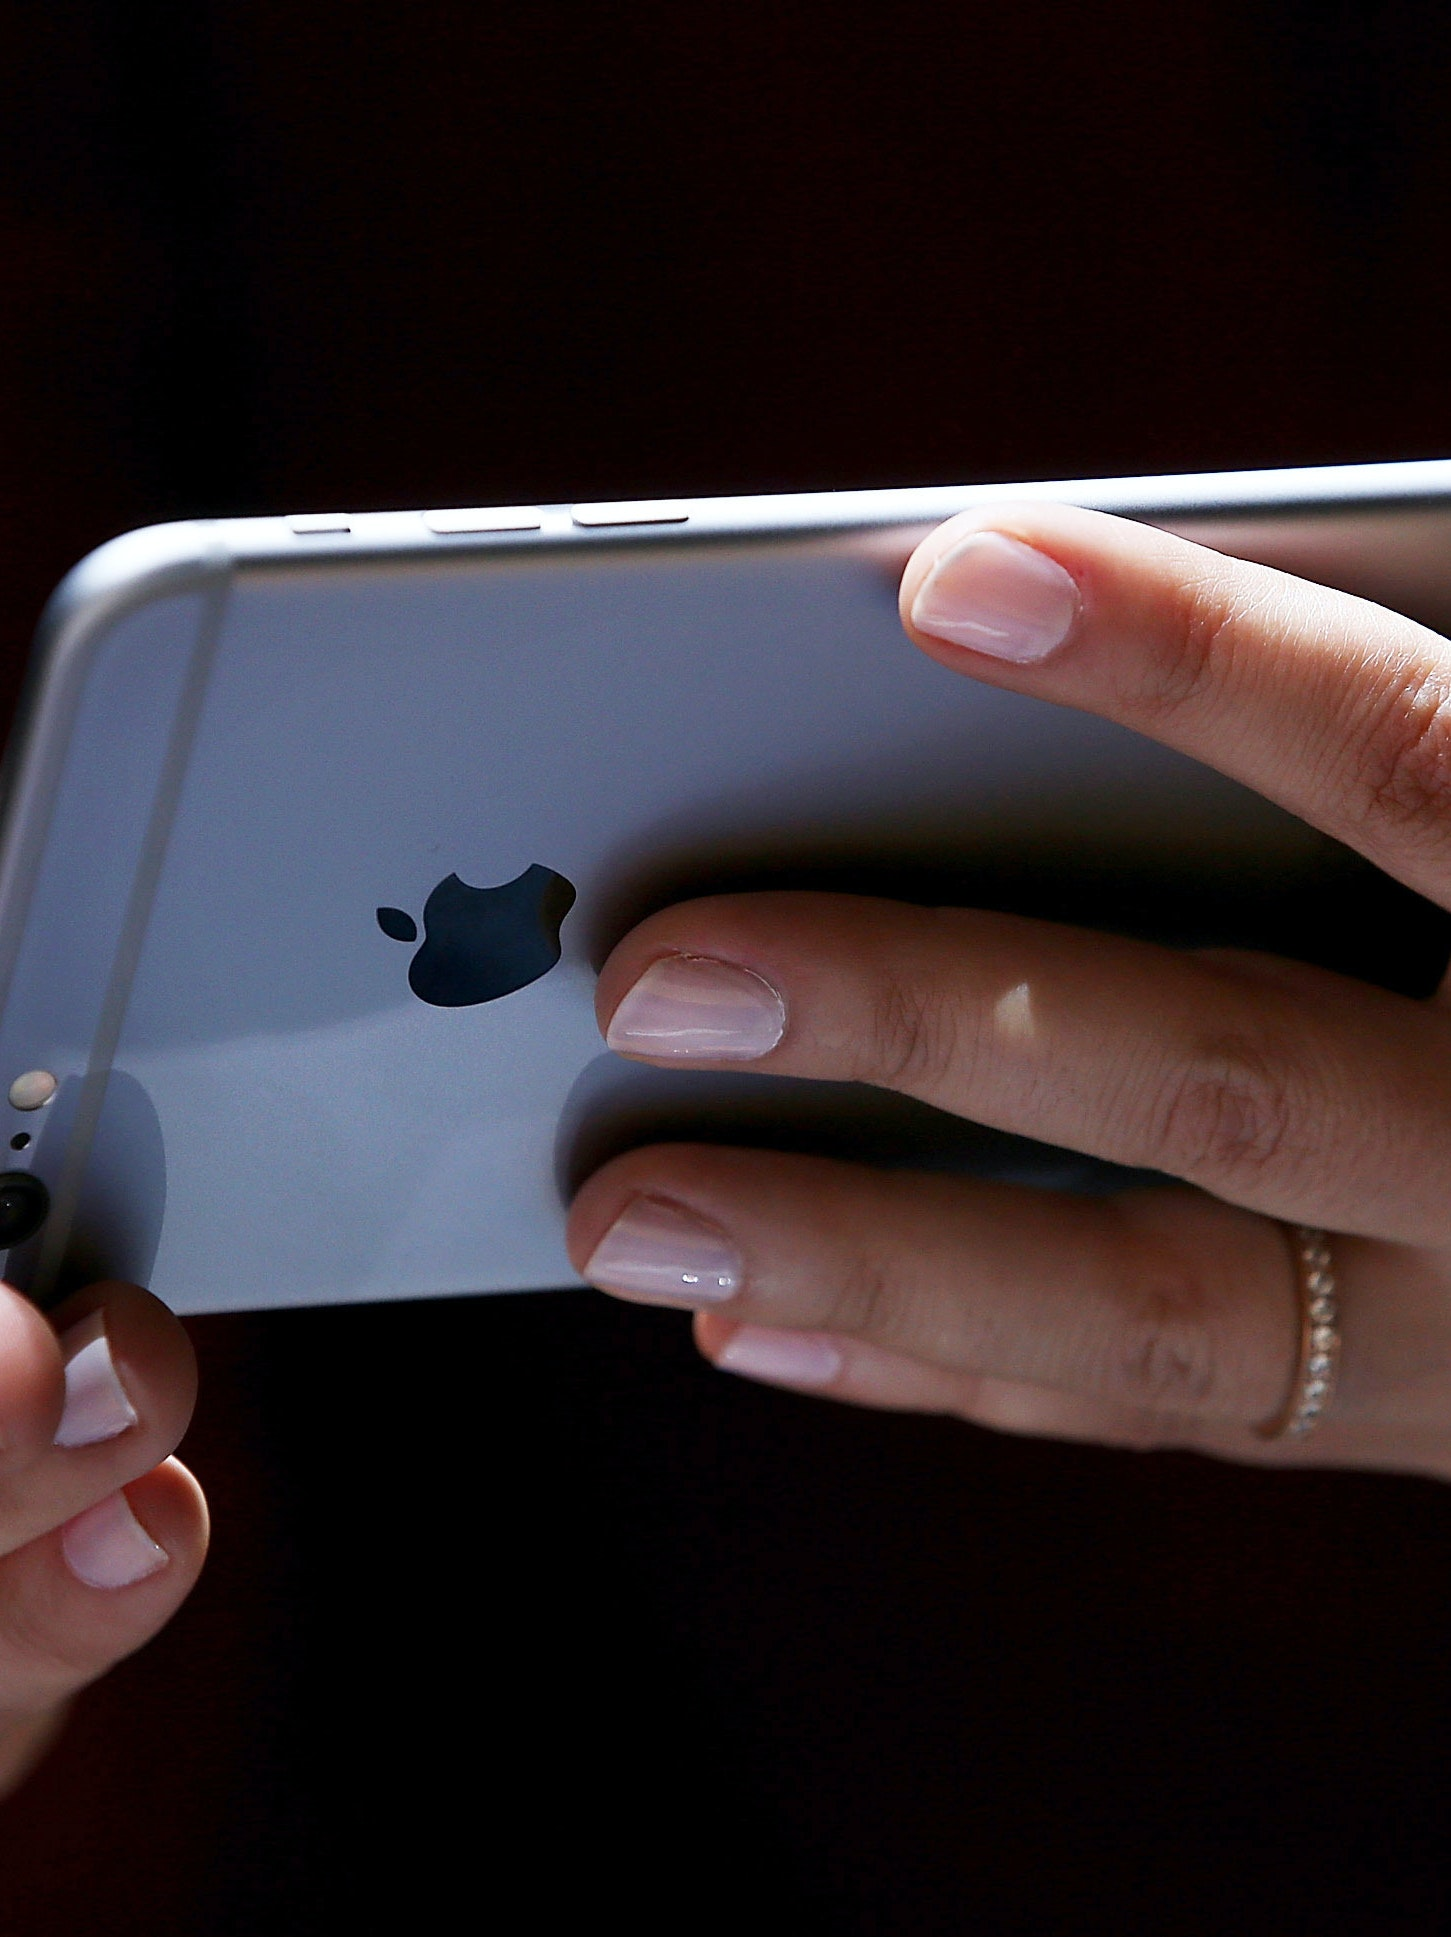 CUPERTINO, CA - SEPTEMBER 09:  A member of the media inspects the new iPhone 6 during an Apple special event at the Flint Center for the Performing Arts on September 9, 2014 in Cupertino, California. Apple unveiled the Apple Watch wearable tech and two new iPhones, the iPhone 6 and iPhone 6 Plus.  (Photo by Justin Sullivan/Getty Images)